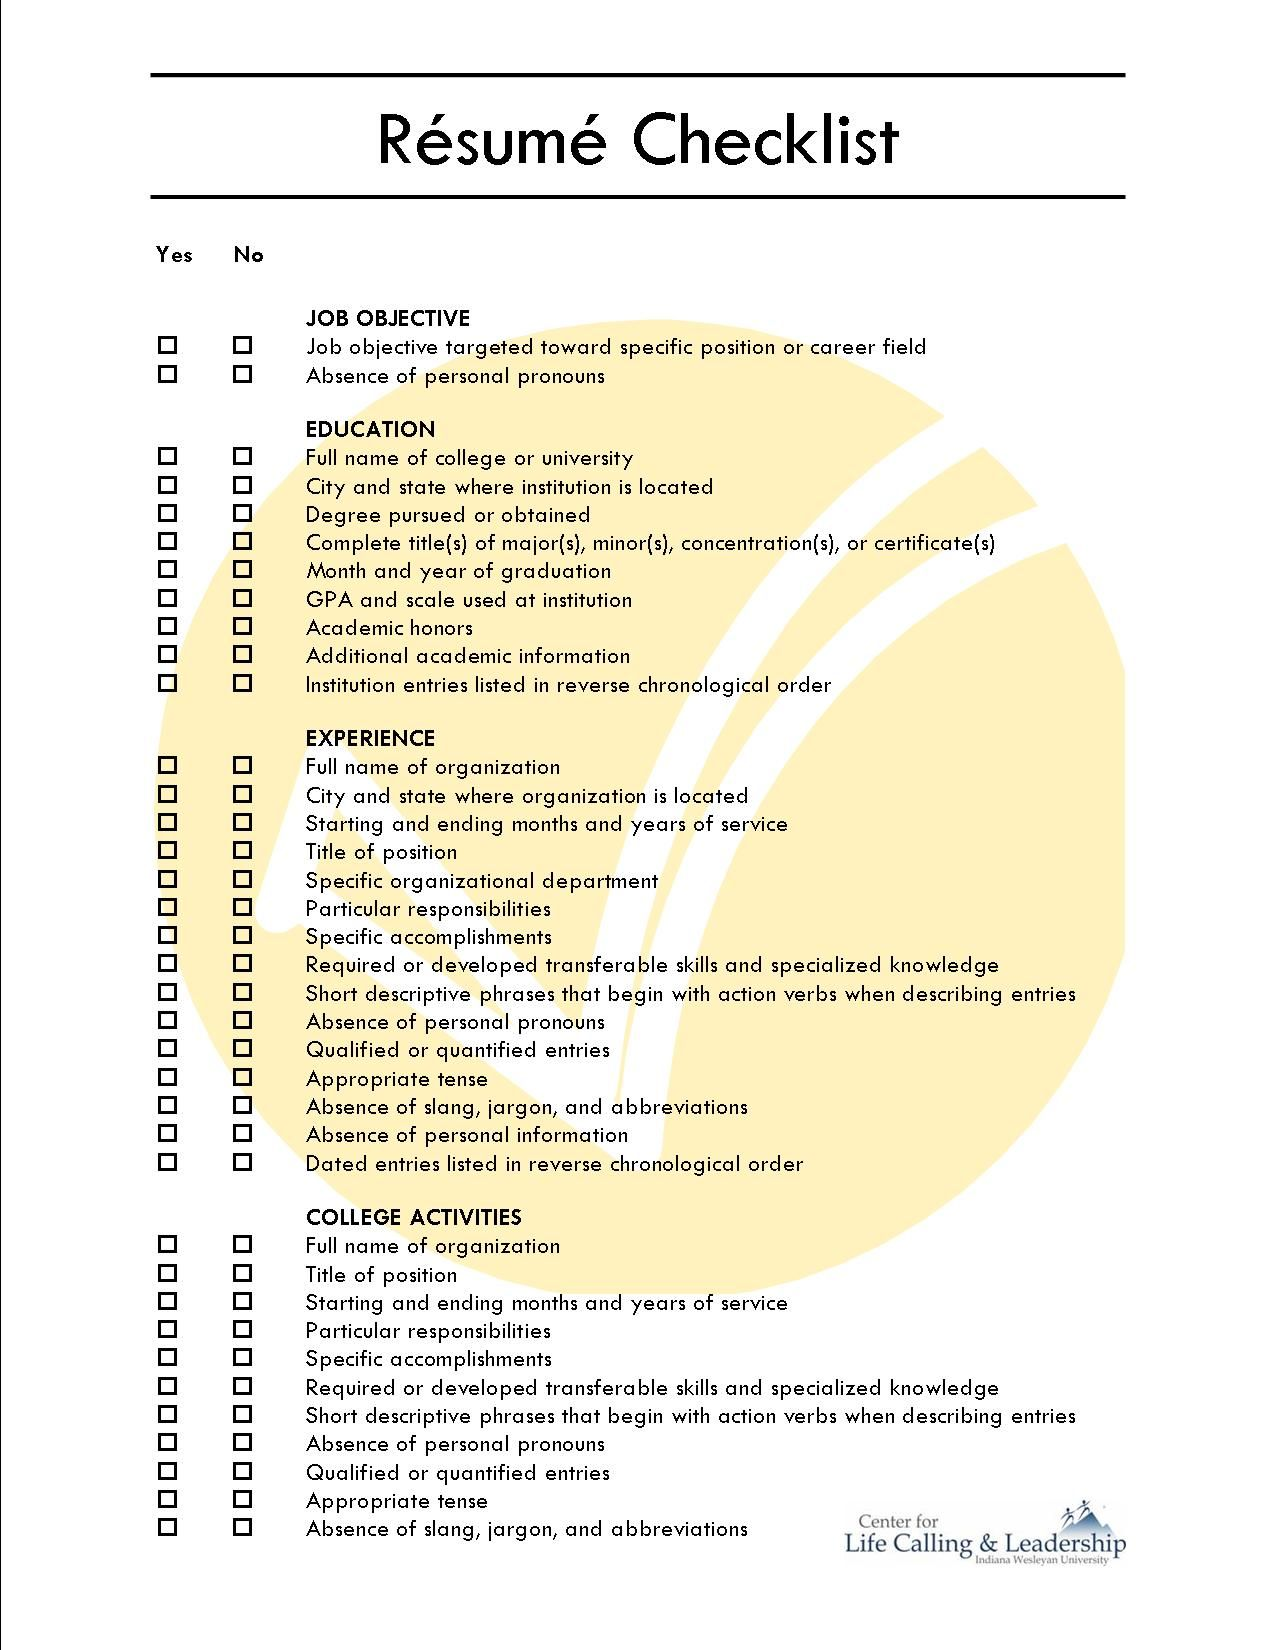 Comprehensive Resume Checklist Sample - Comprehensive Resume ...